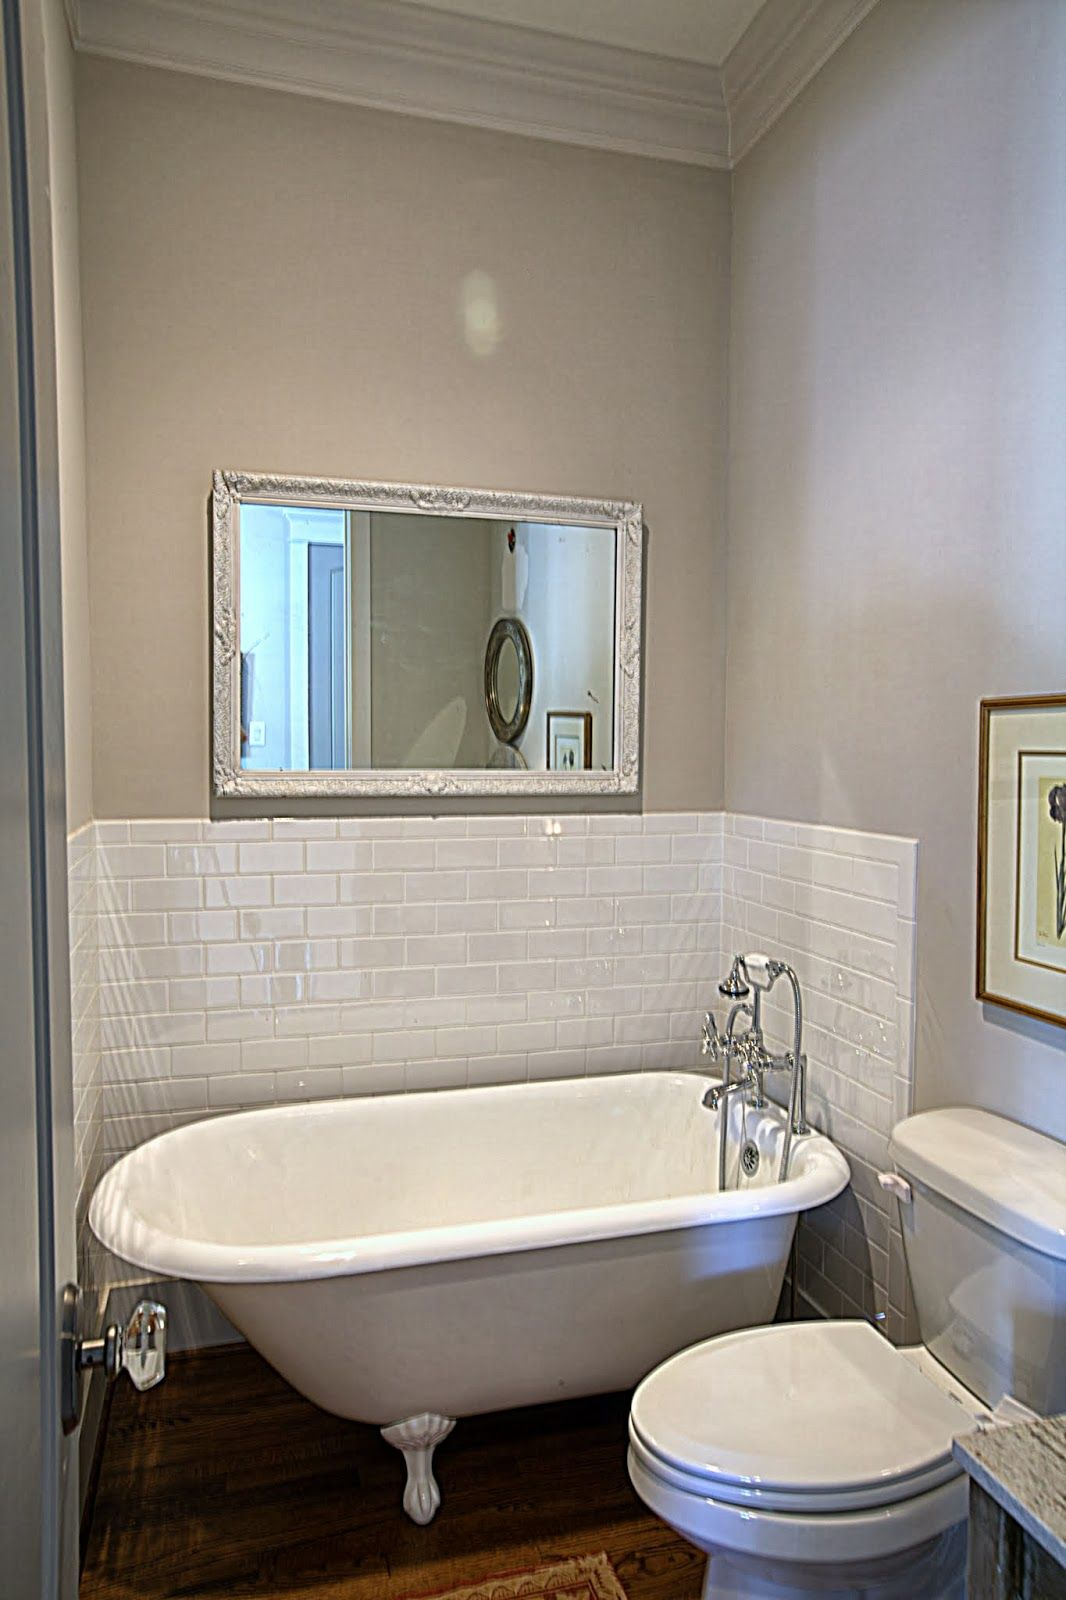 My clawfoot tub cedar hill farmhouse love this for the - Small bathroom with tub and shower ...